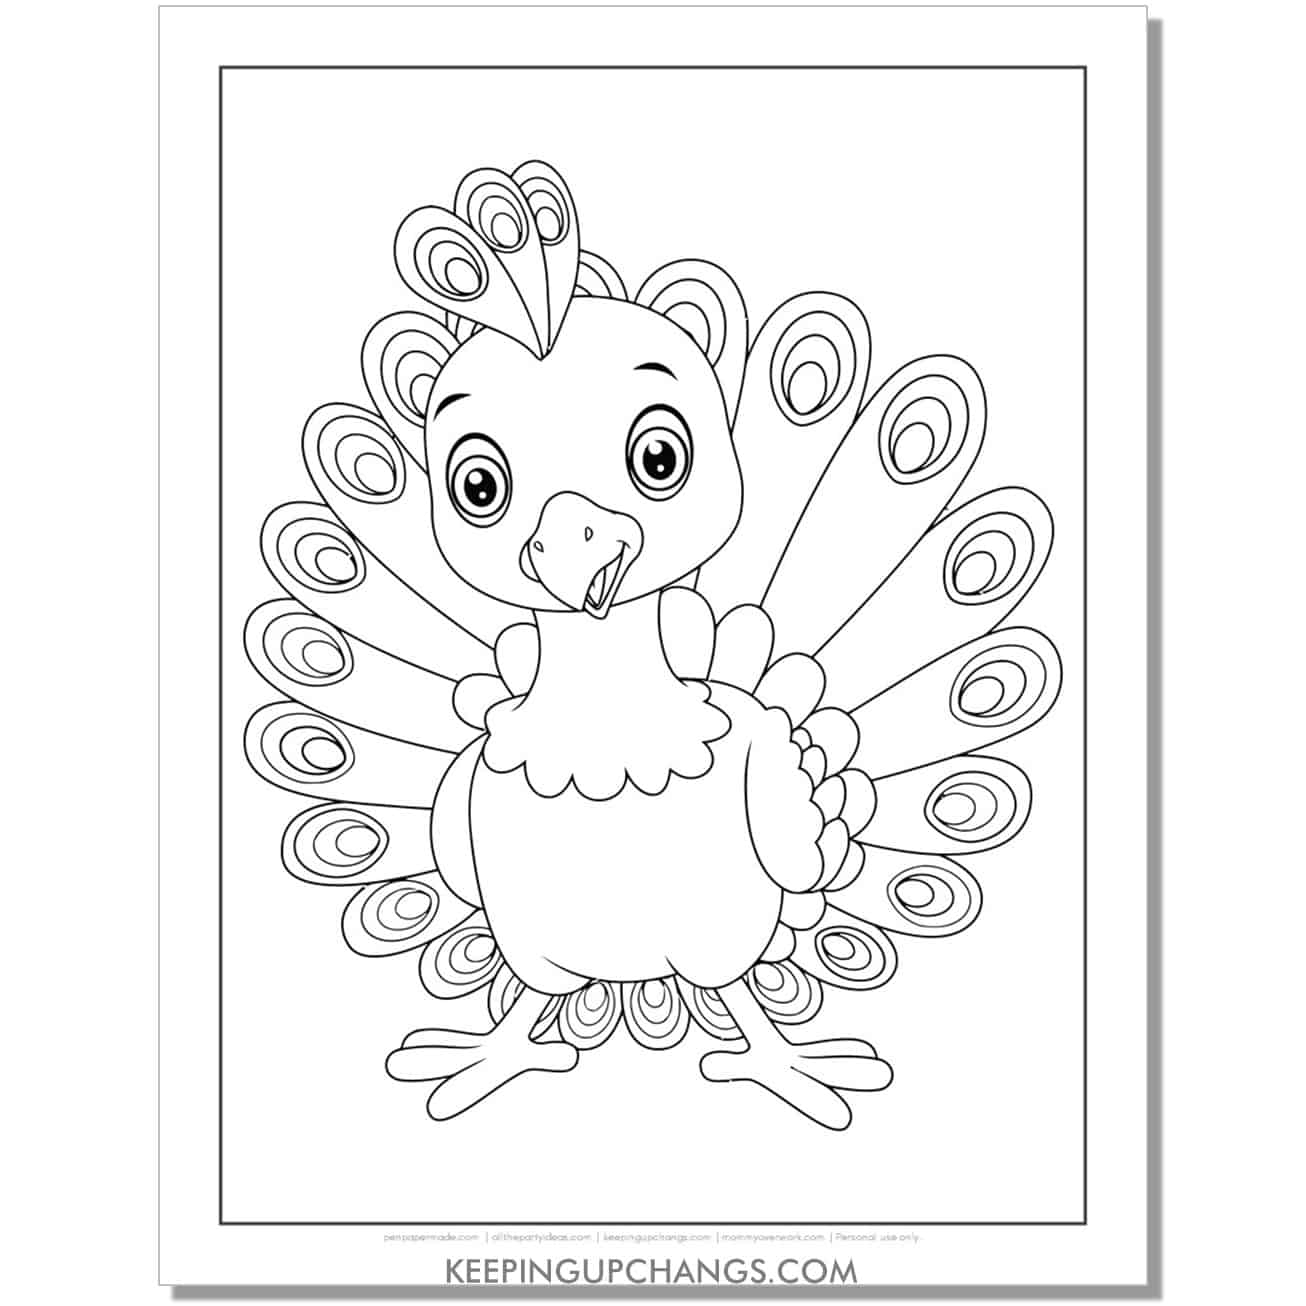 cute baby peacock coloring page.